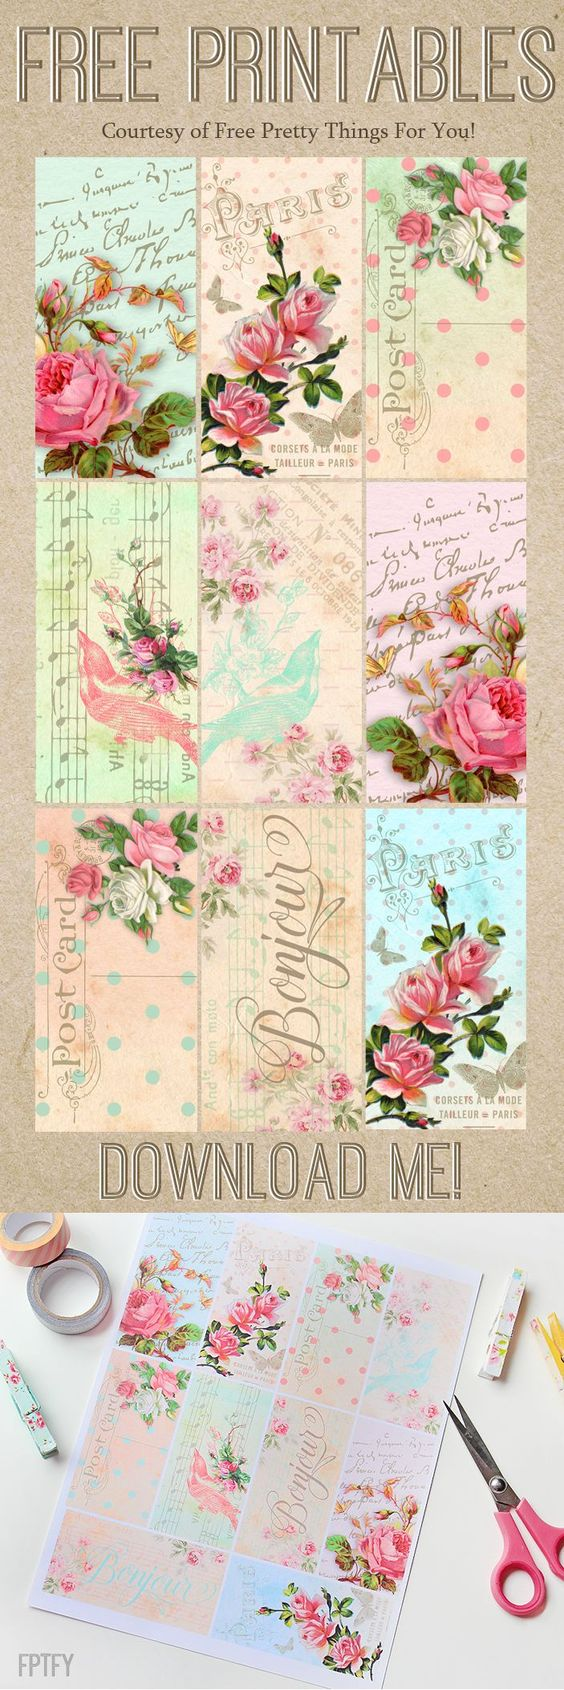 Mothers Free Printables And Scrapbooking Kit On Pinterest